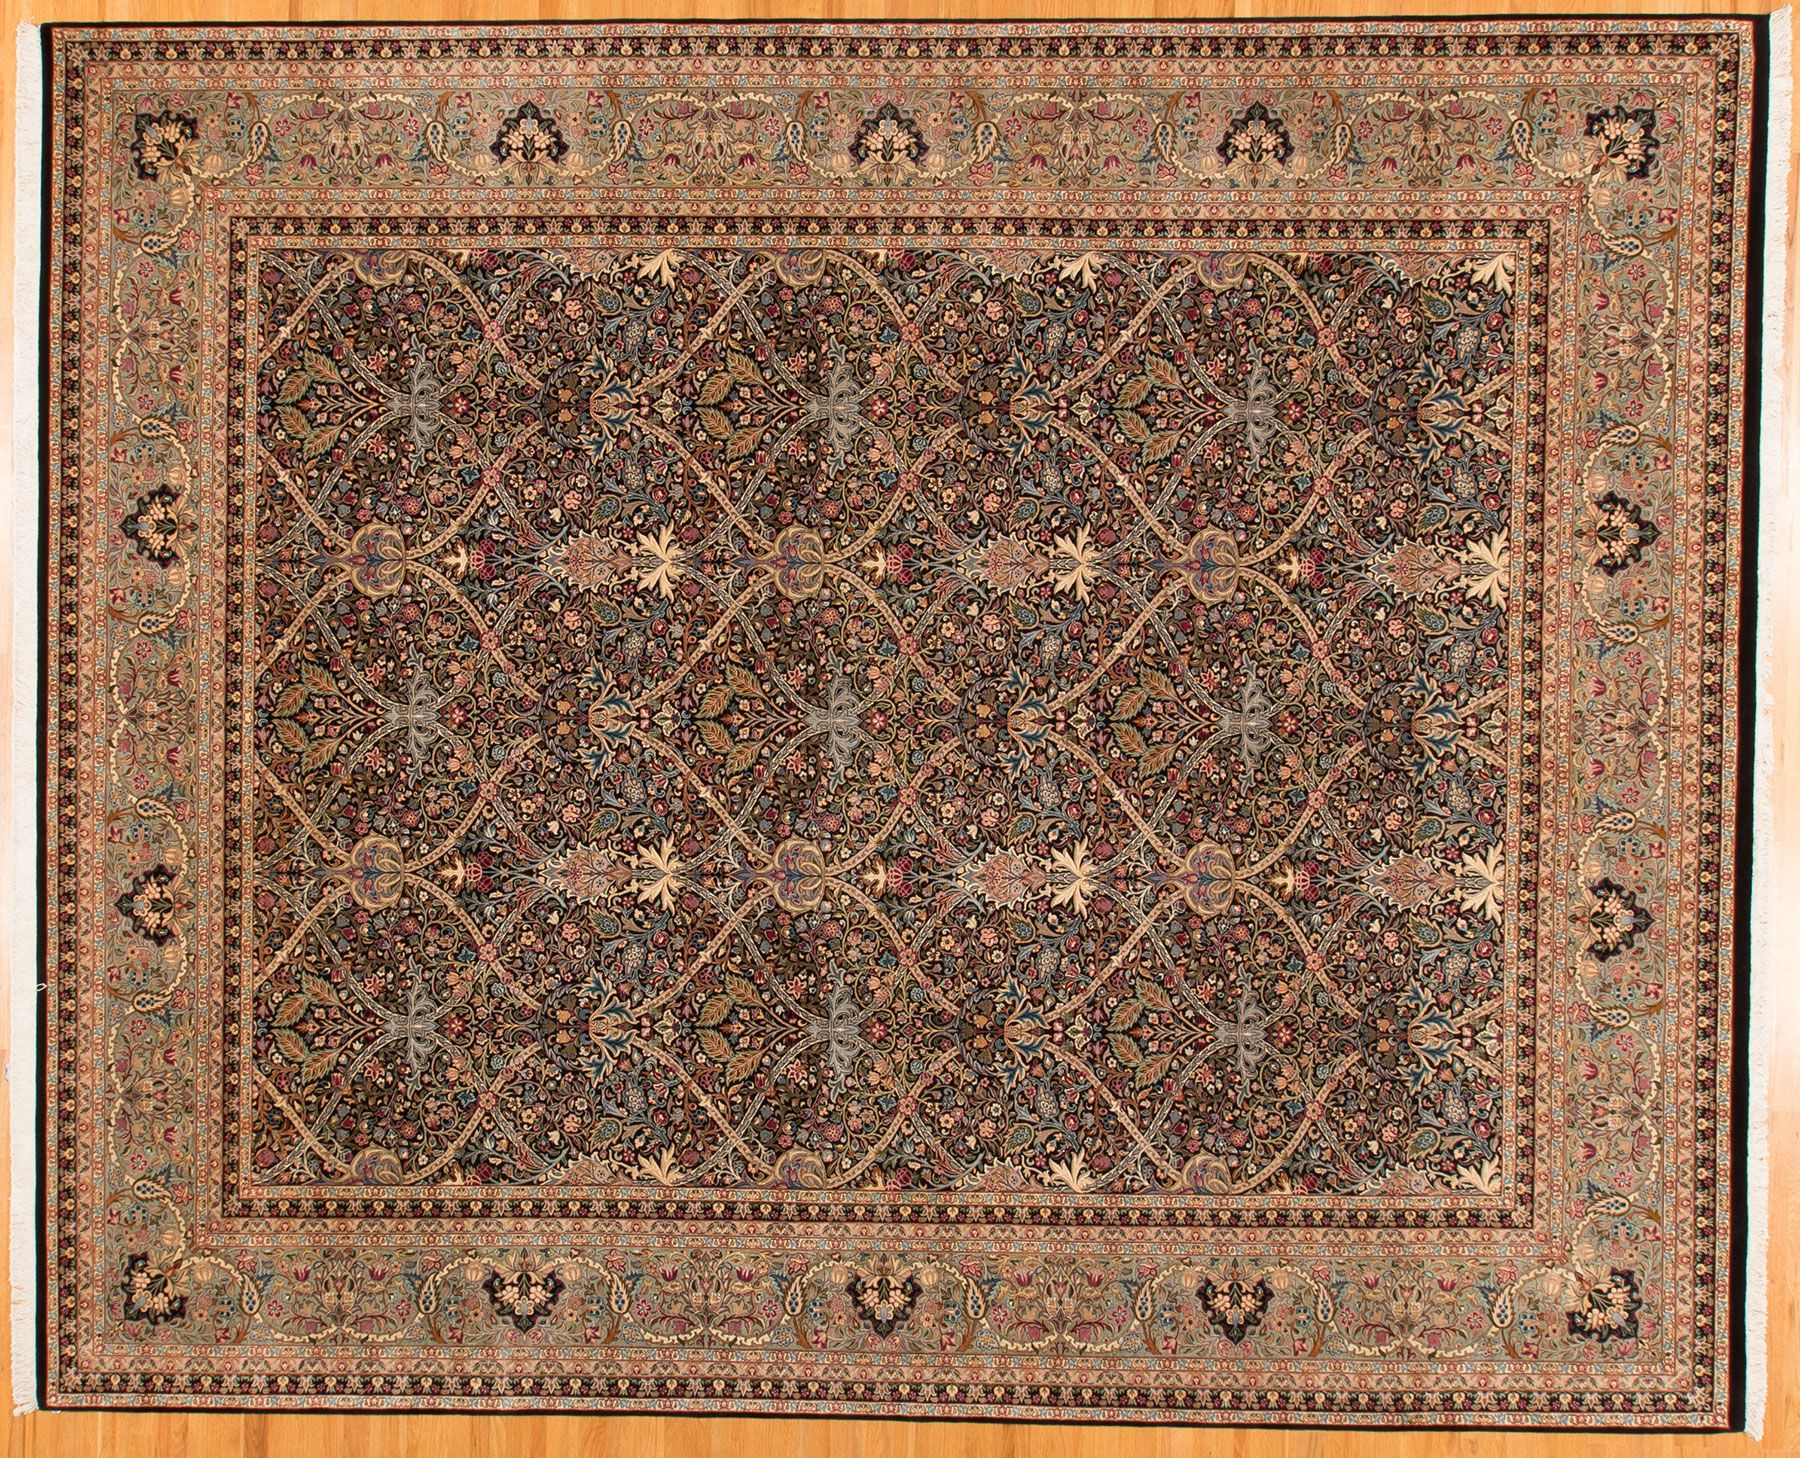 12x15 Kirman A Beauty For Sure Rugs From 1x2 Ft To 17x28 Ft A Masterpiece For Every Style And Budget Rugs Oriental Rug Persian Rug